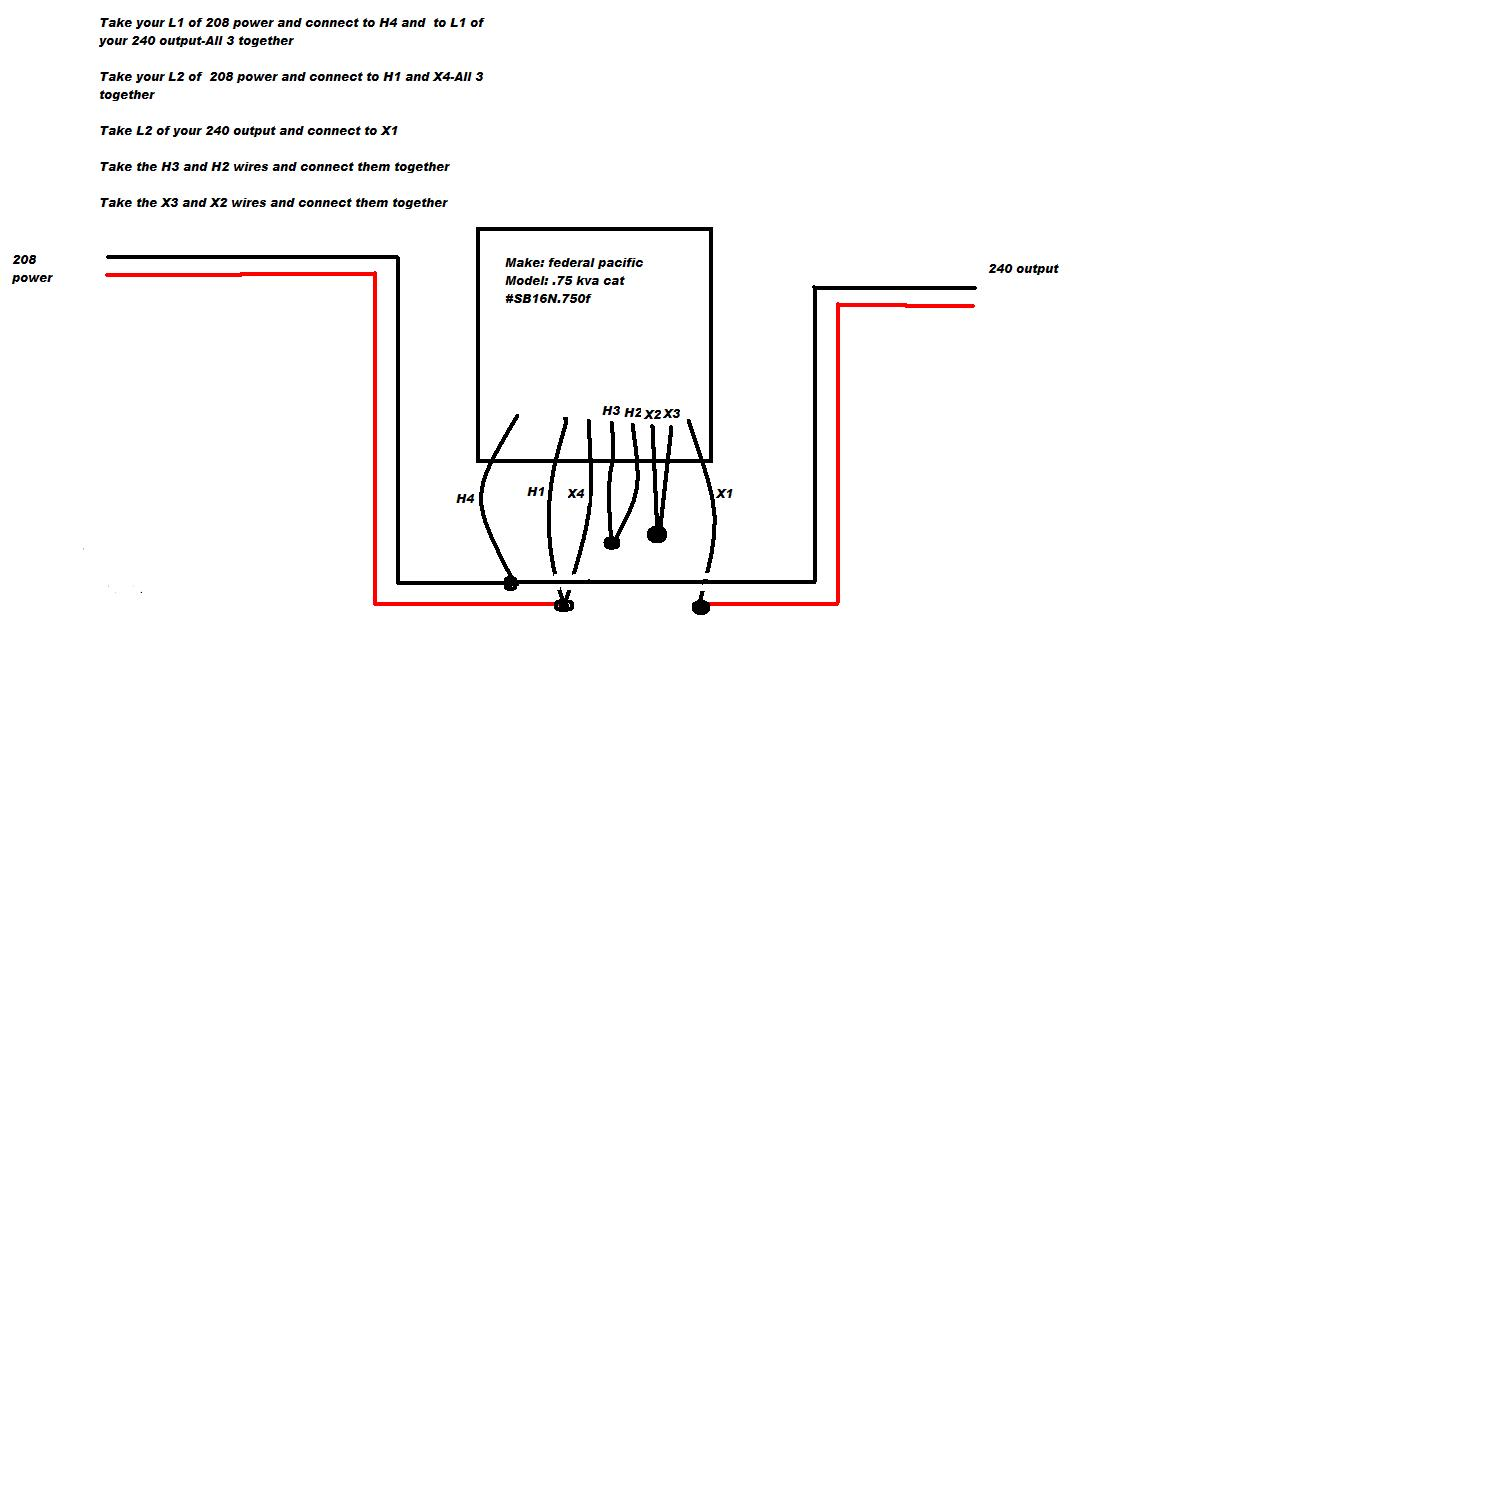 acme buck boost transformer wiring diagram wiring diagram and acme buck boost transformer s transformers on buck boost transformer wiring diagram wedocable